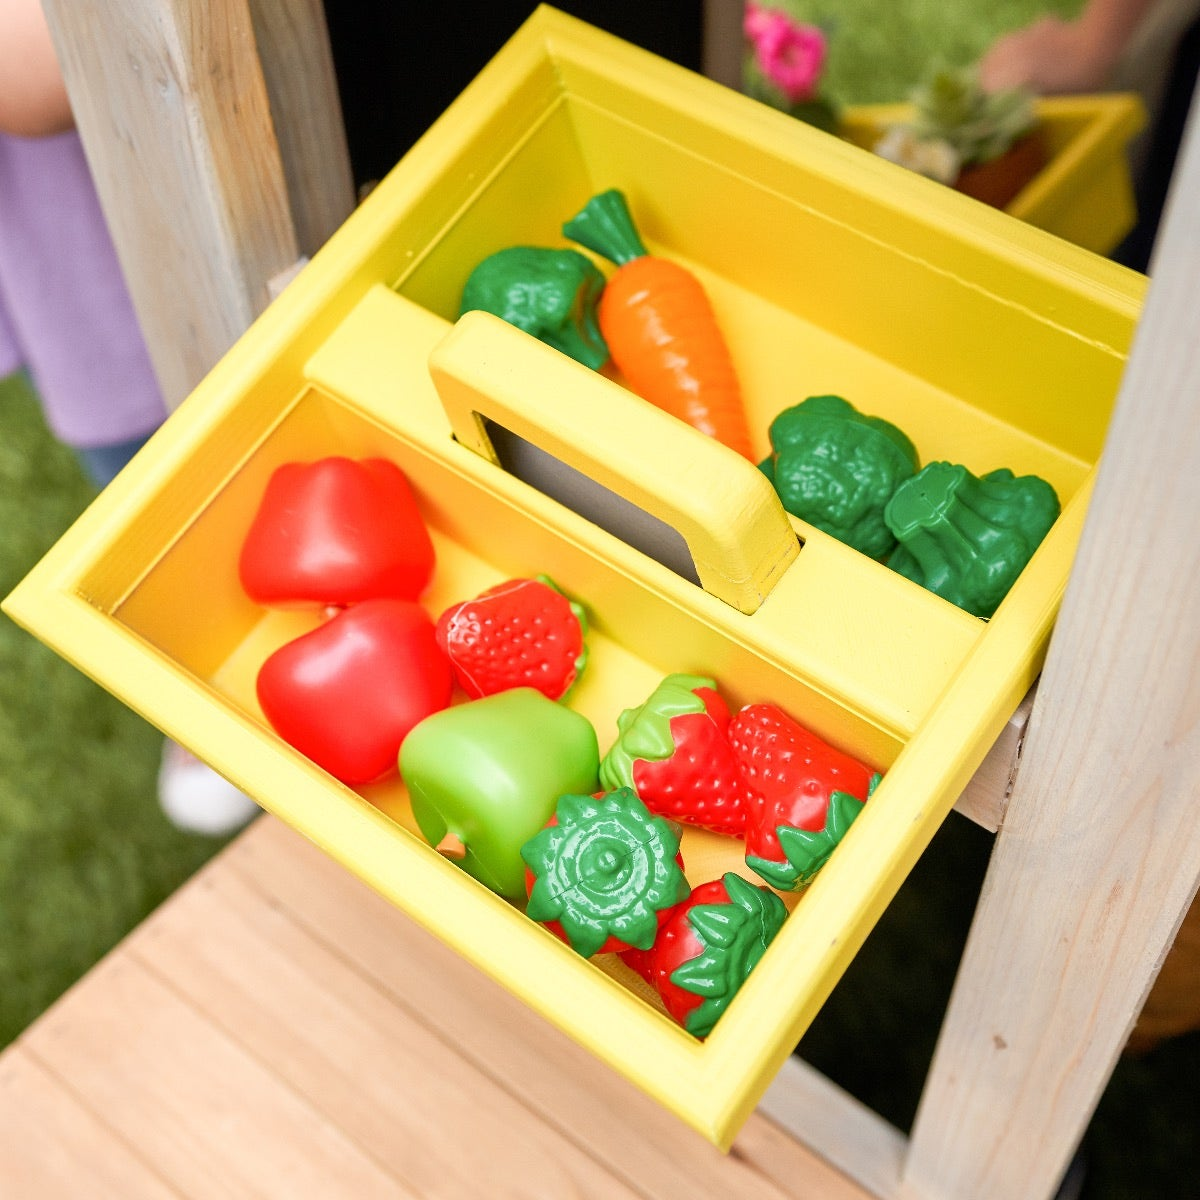 Kids can learn about gardening with the included plastic tote and garden tools